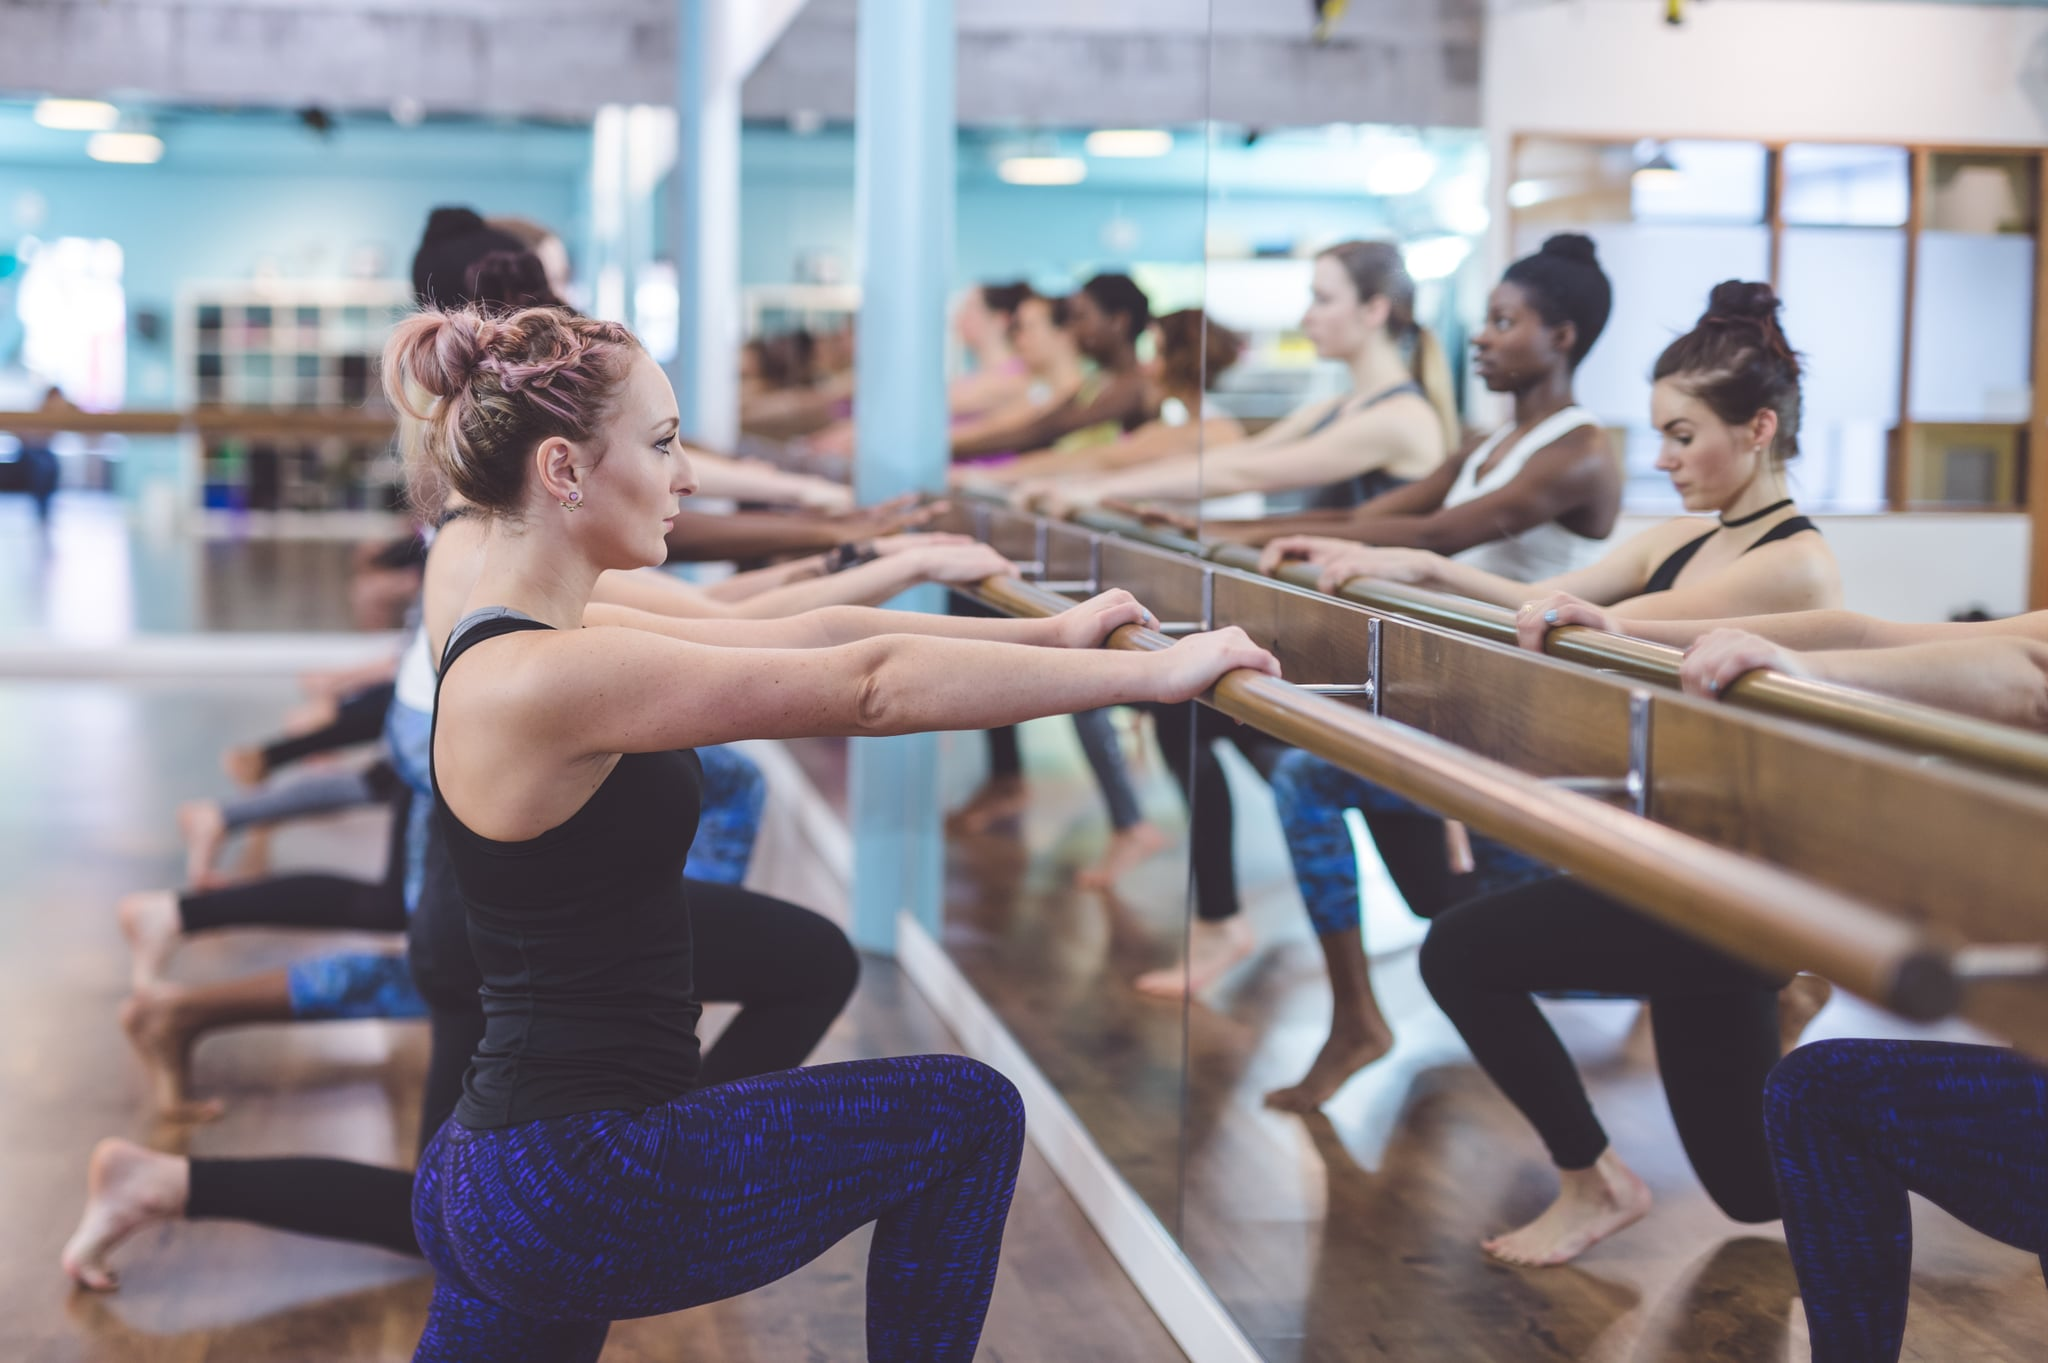 A multiethnic group of young women do a barre workout together at a modern gym. They are facing the mirror on the wall, gripping the barre, and squatting as they go through their lunge repetitions.